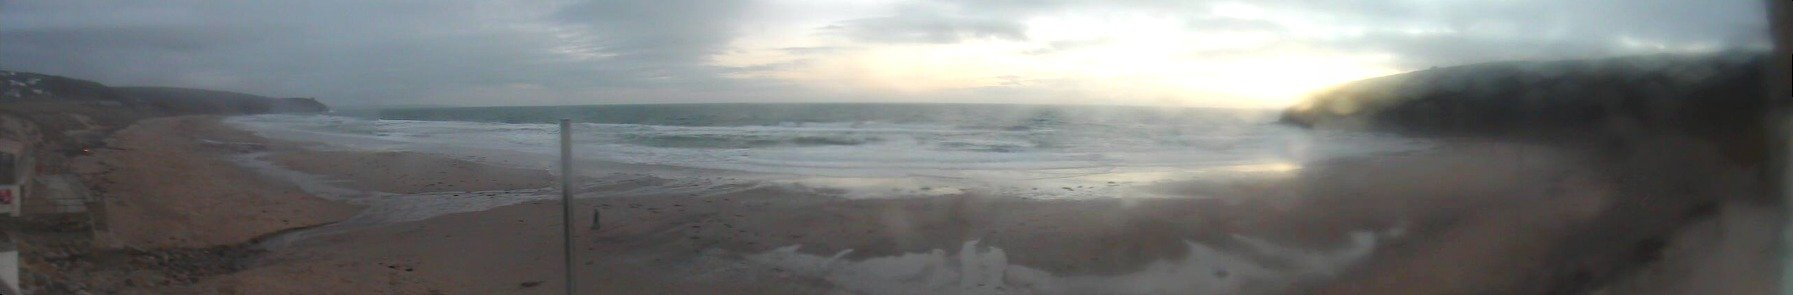 Latest webcam still for Praa Sands